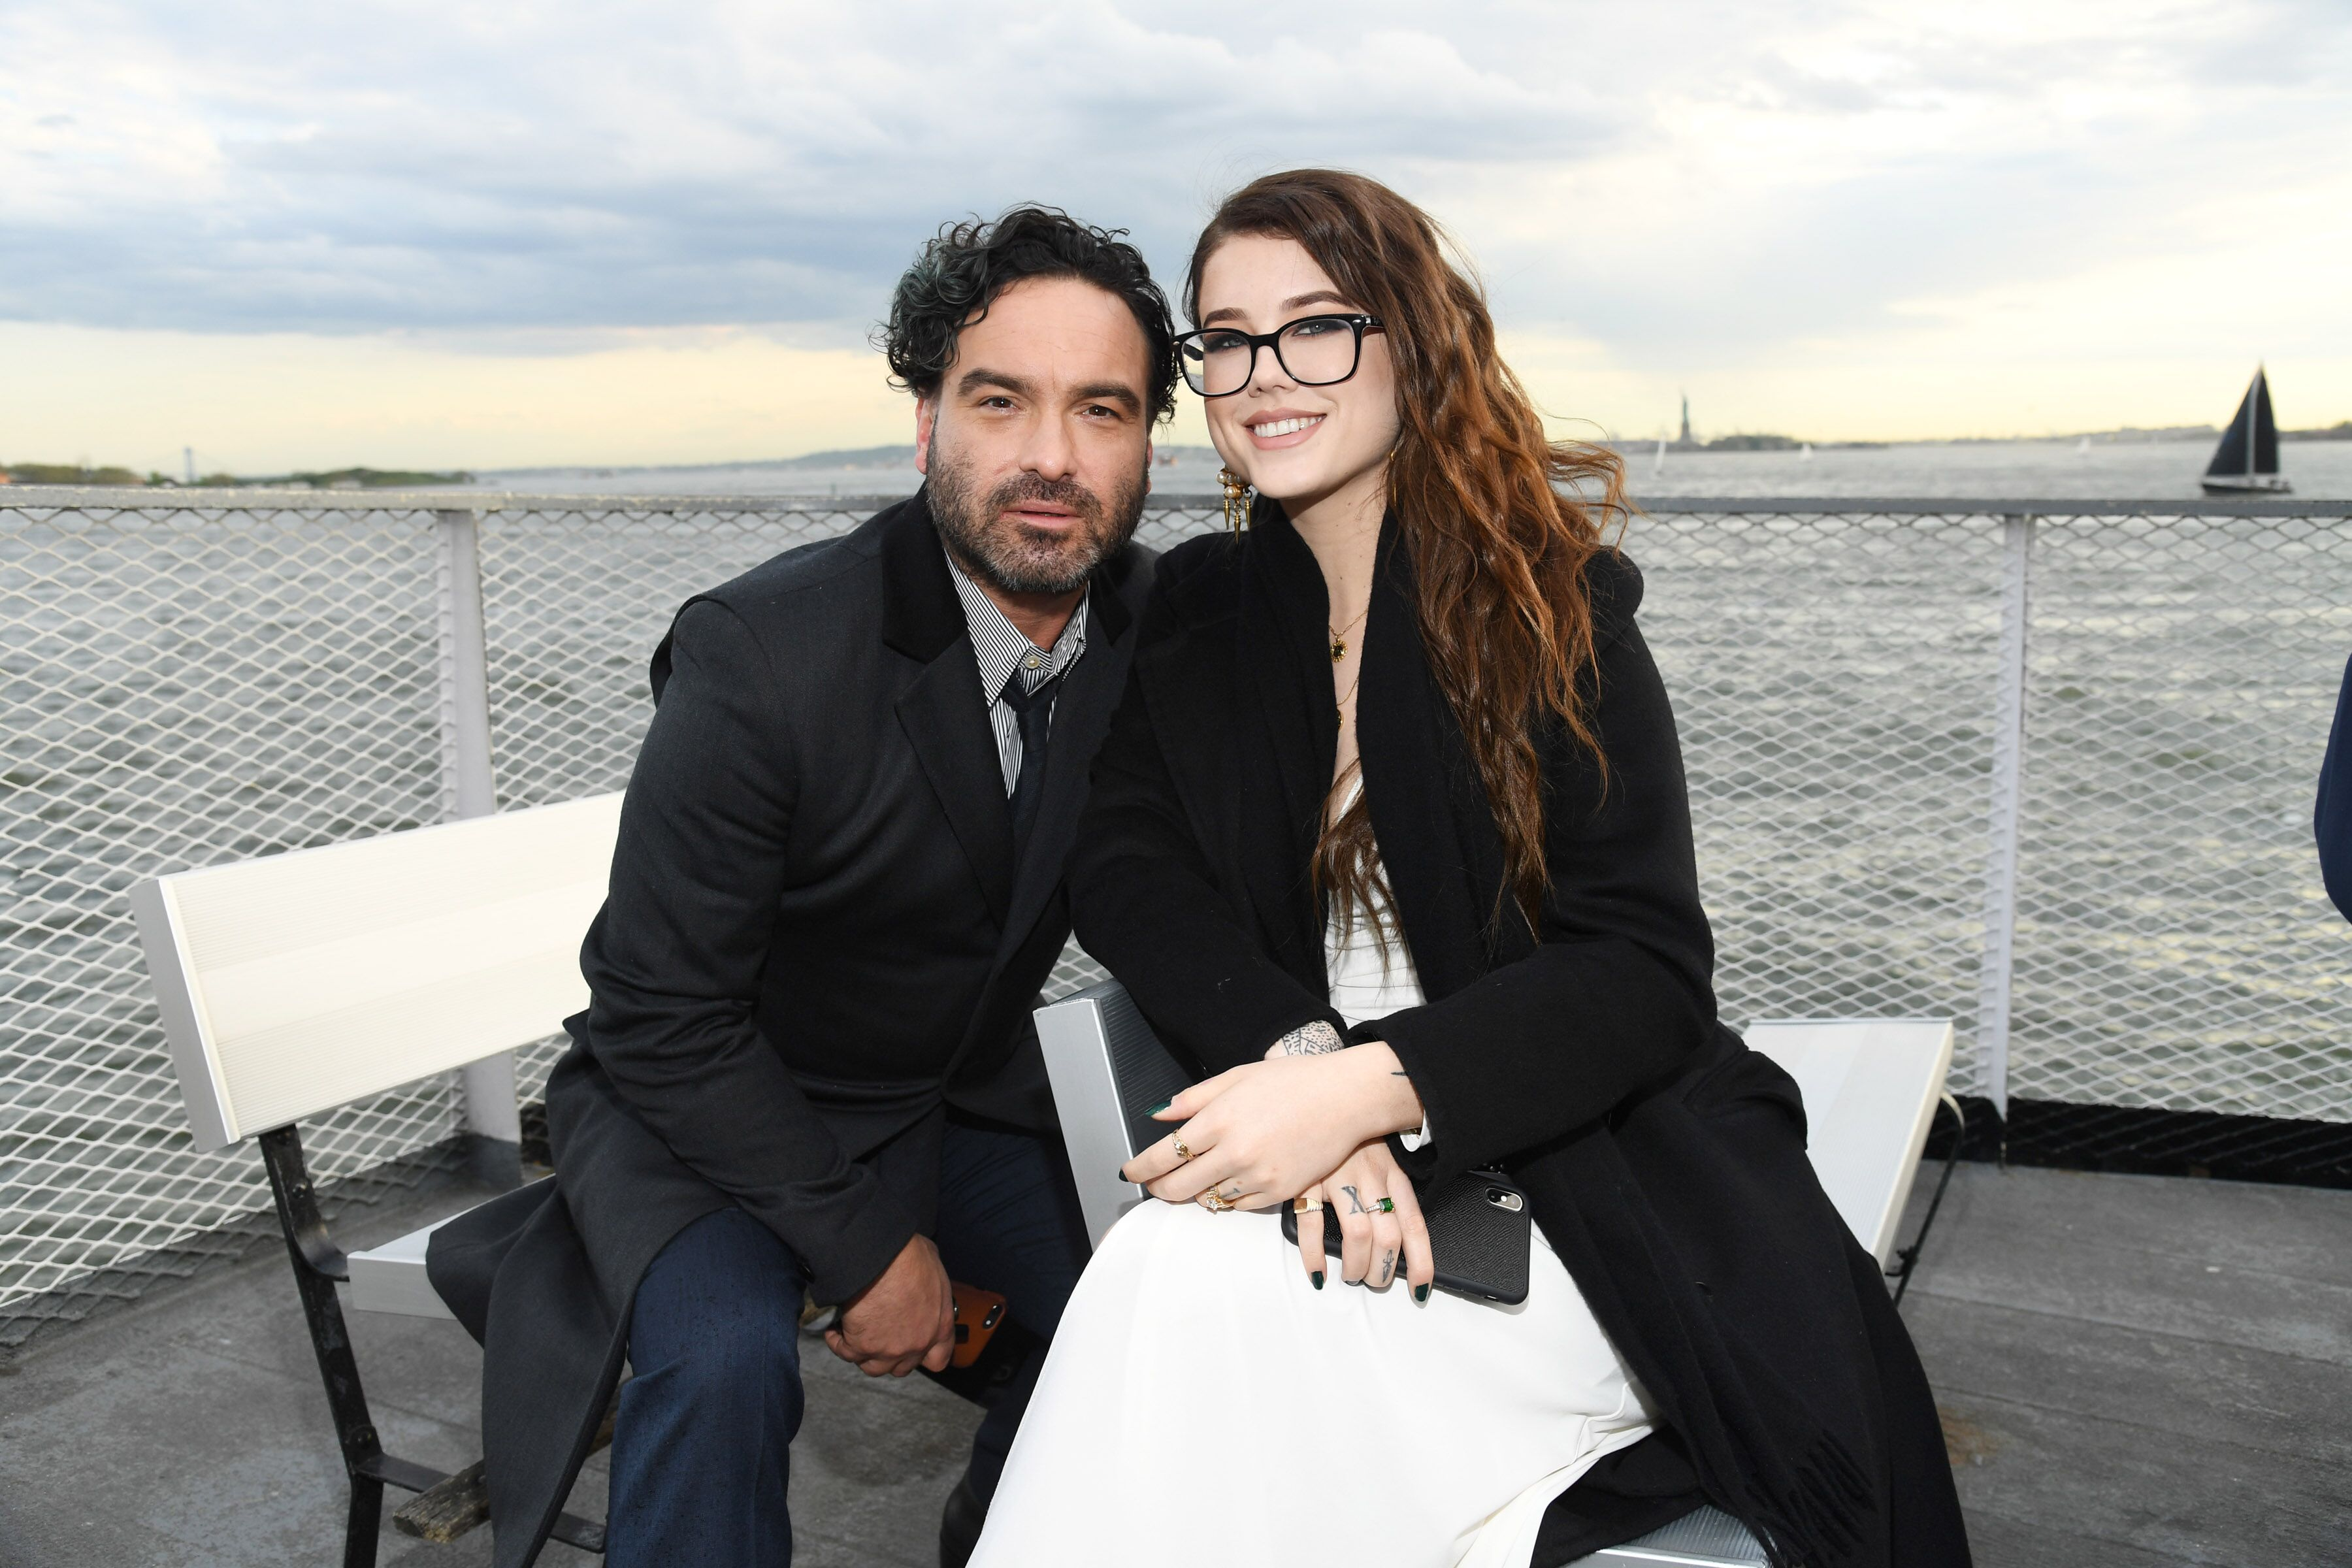 Johnny Galecki and Alaina Meyer attend the Statue Of Liberty Museum Opening Celebration at Battery Park on May 15, 2019 in New York City.  | Source: Getty Images